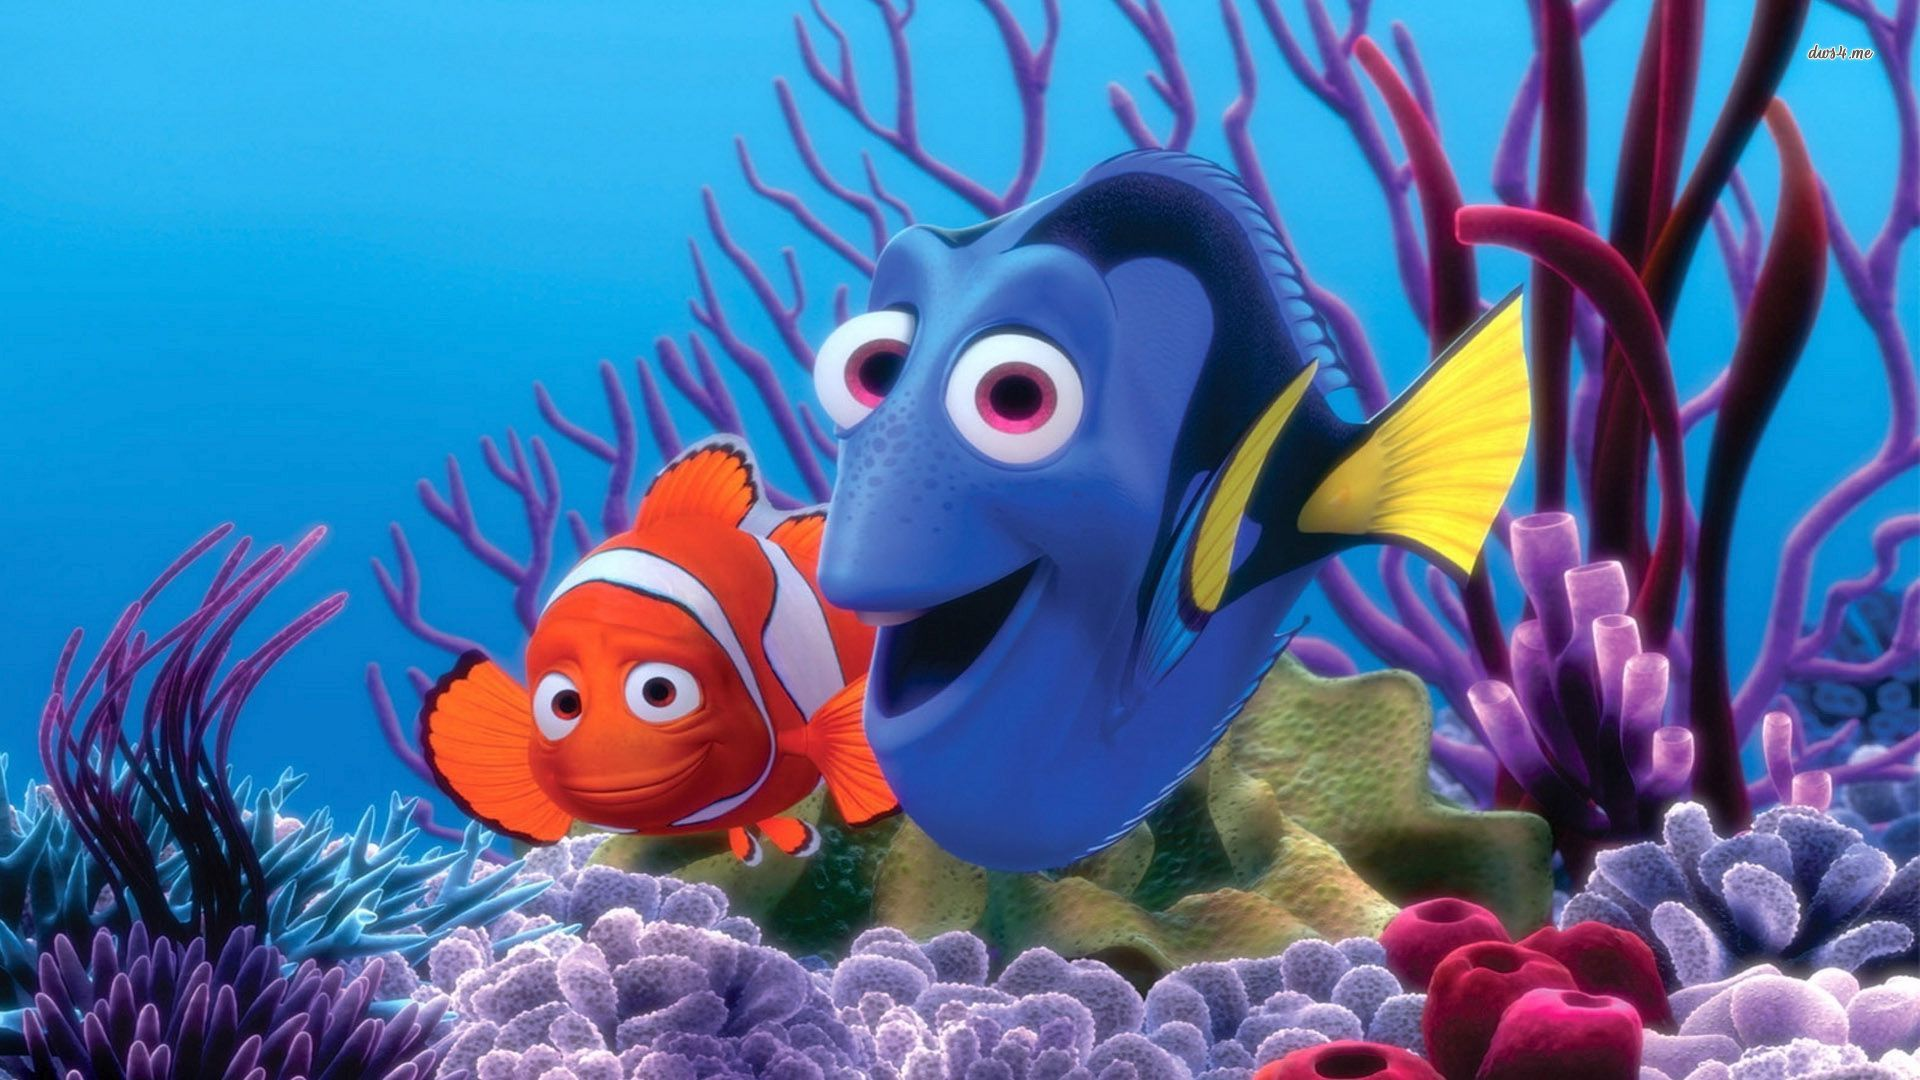 It's just a graphic of Fan Free Finding Nemo